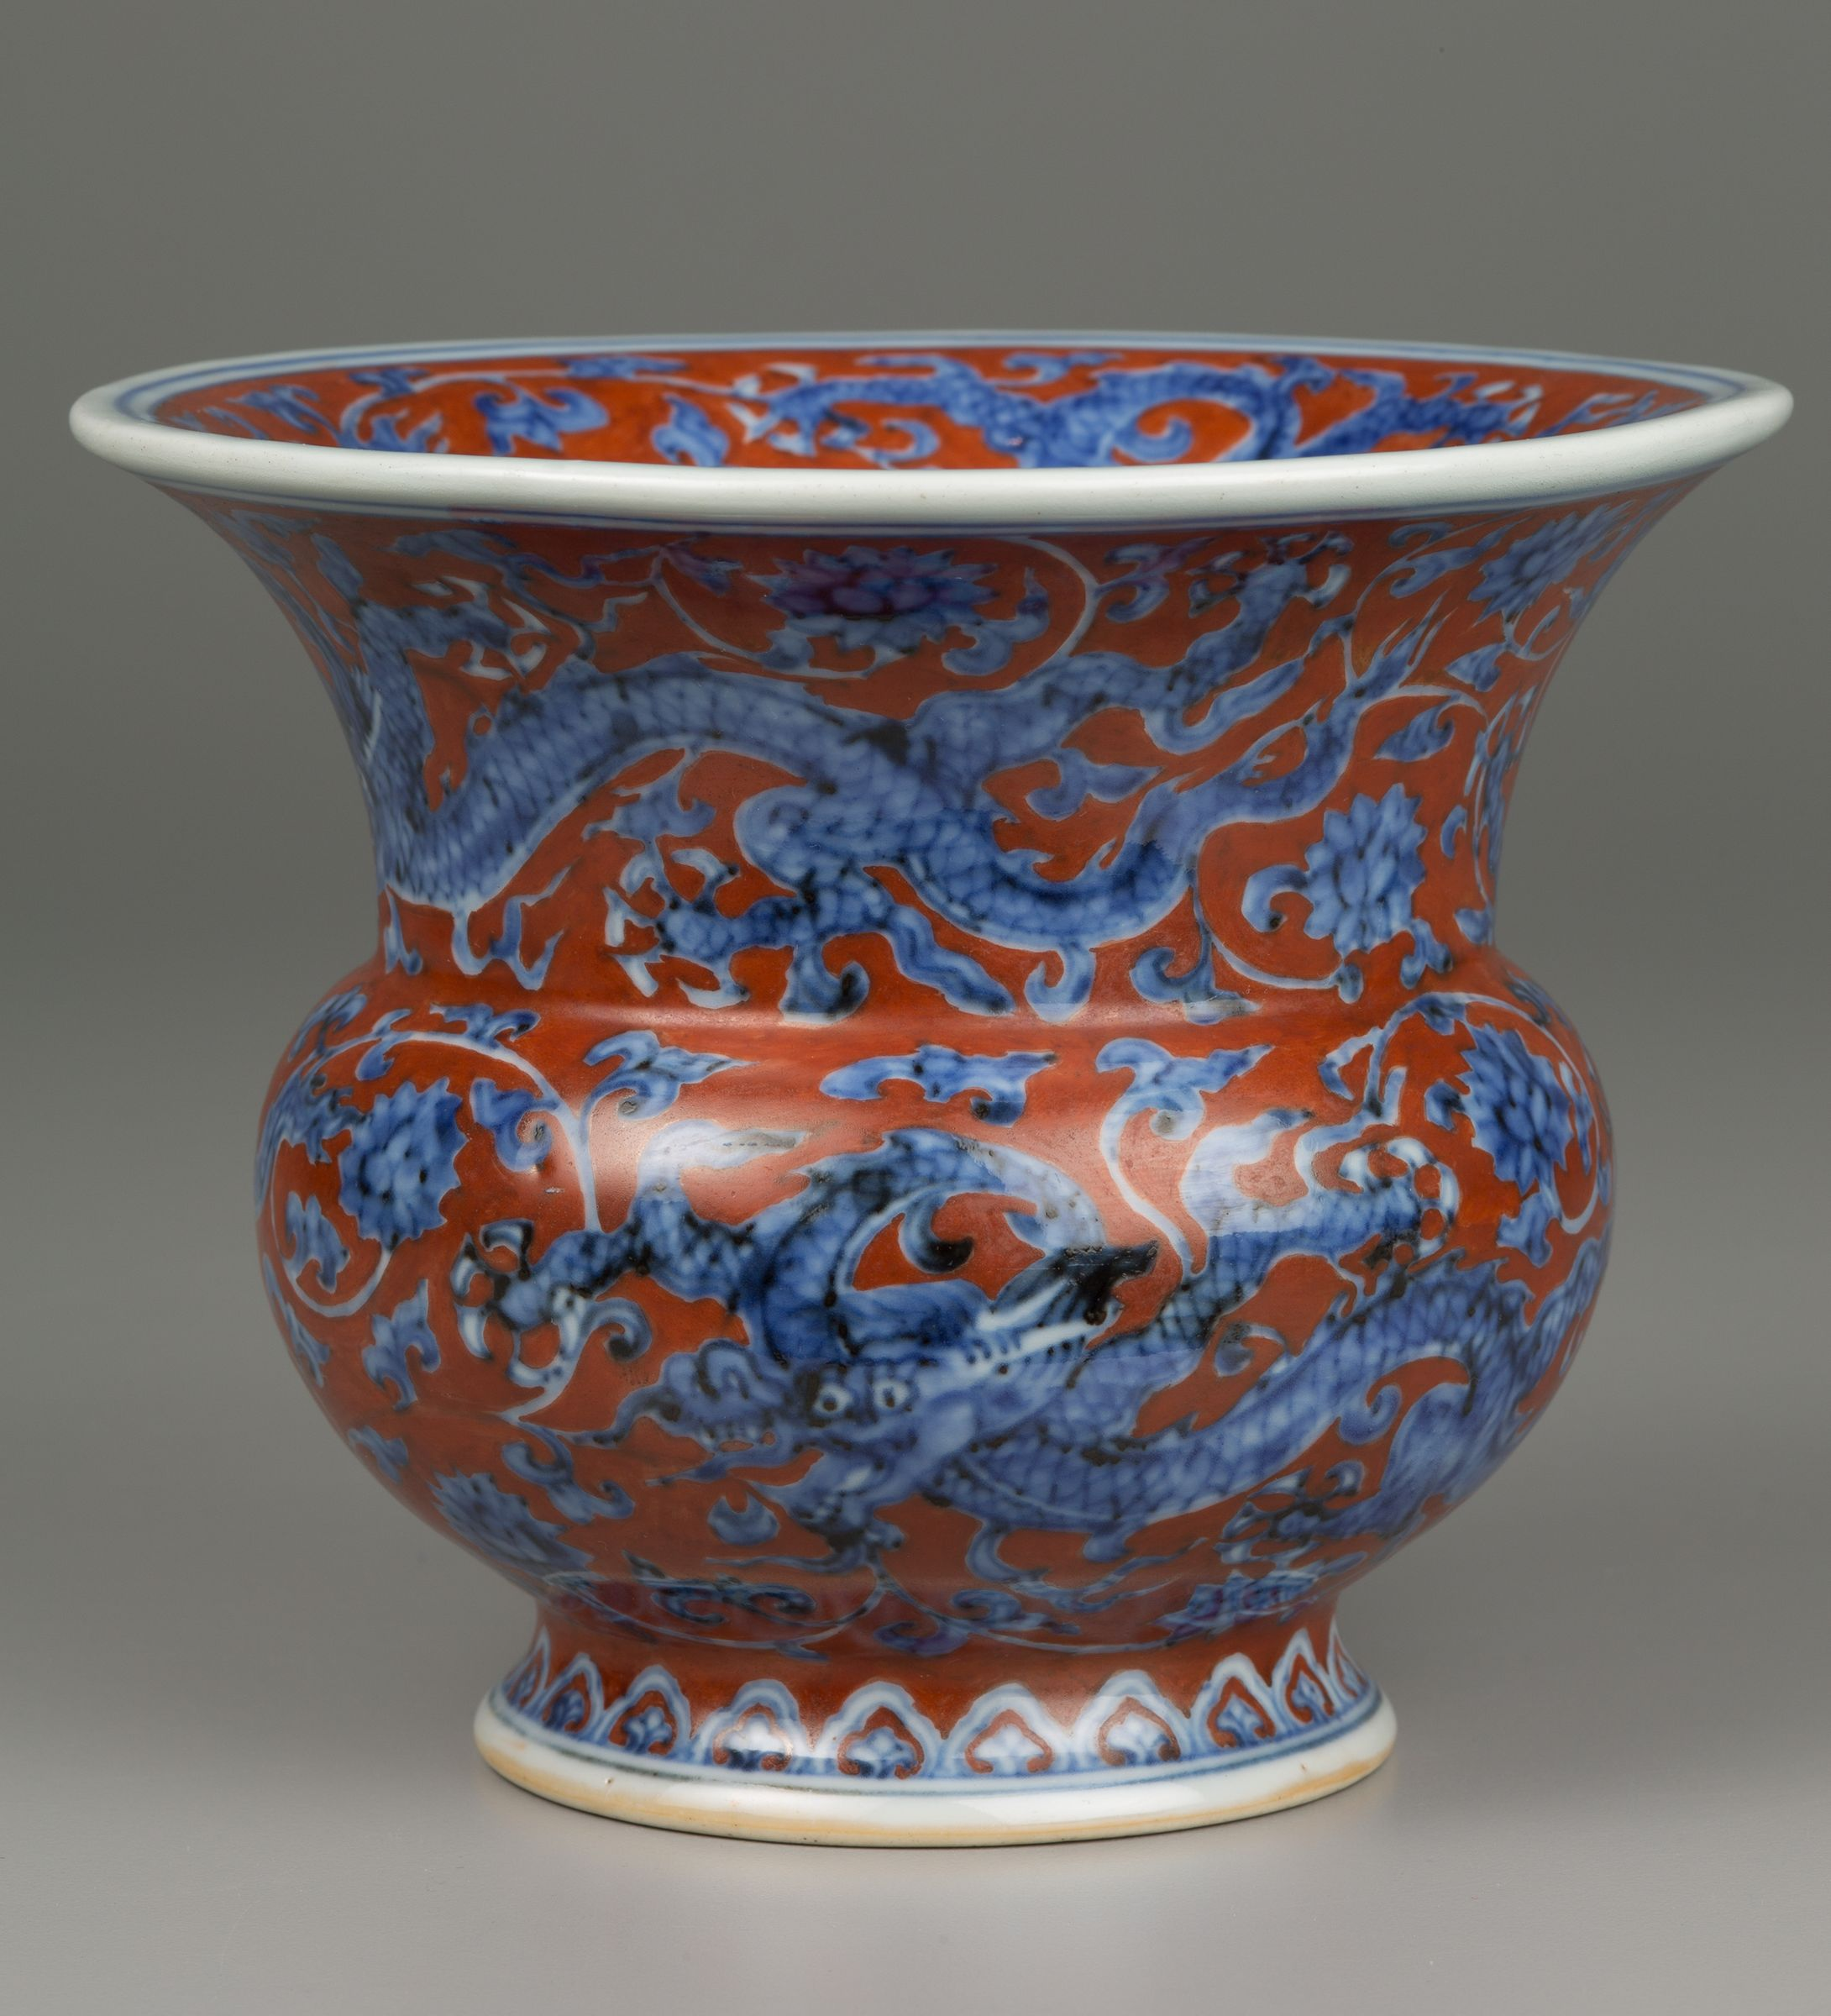 Zhadou-Shaped Vase With Dragons And Scrolling Flower Decor